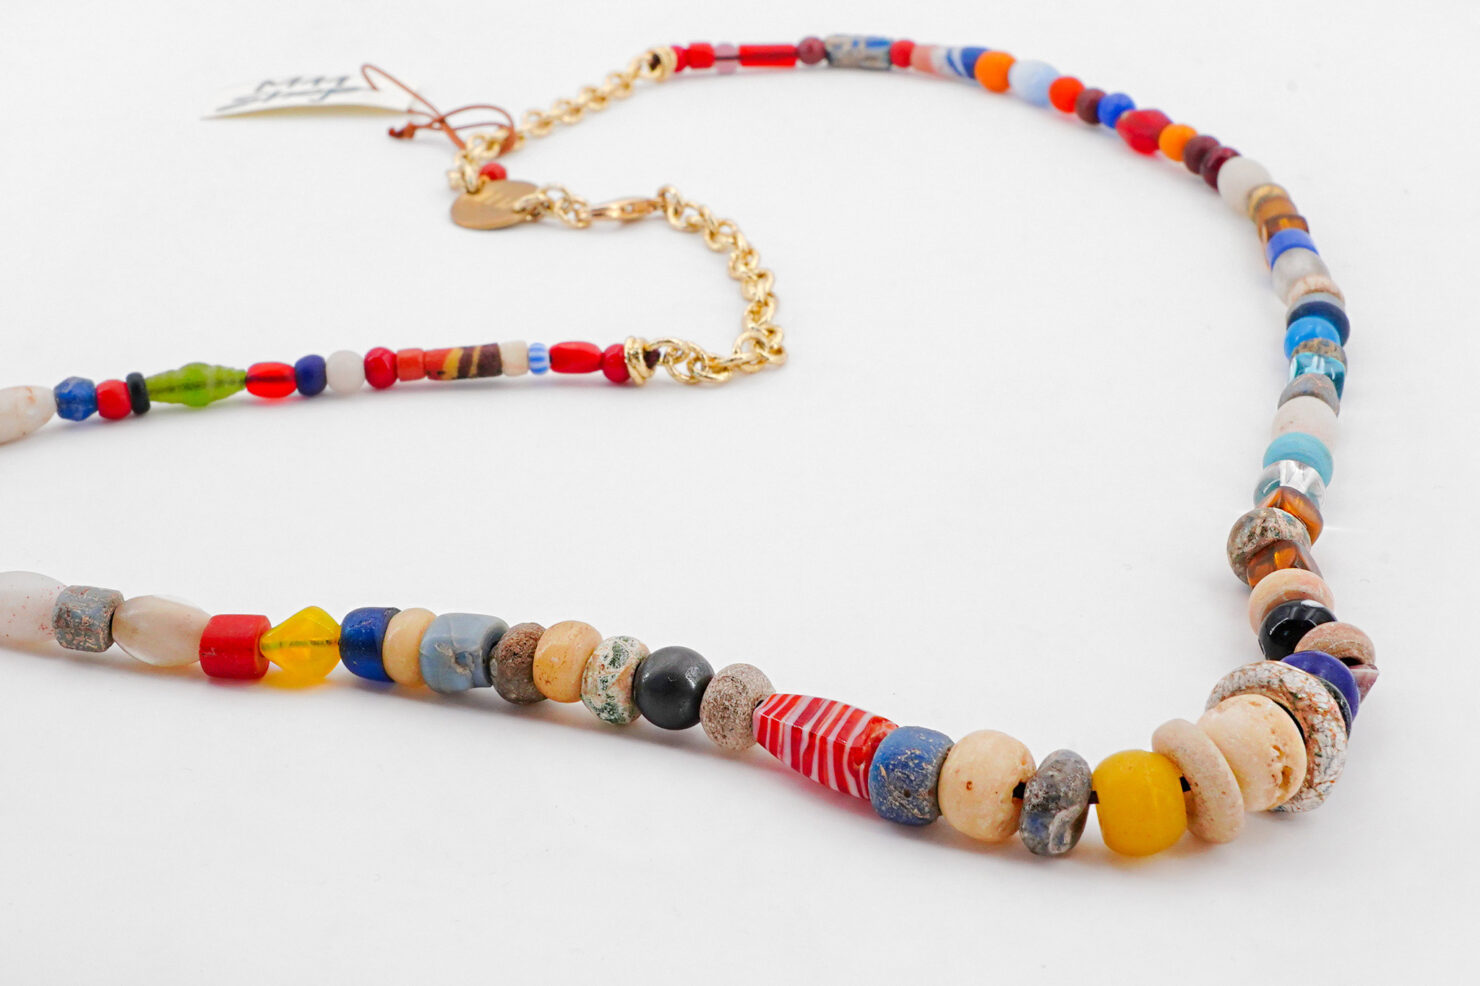 NECKLACE ANCIENT AFRICAN GLASS PEARLS 9 - M11SHOP